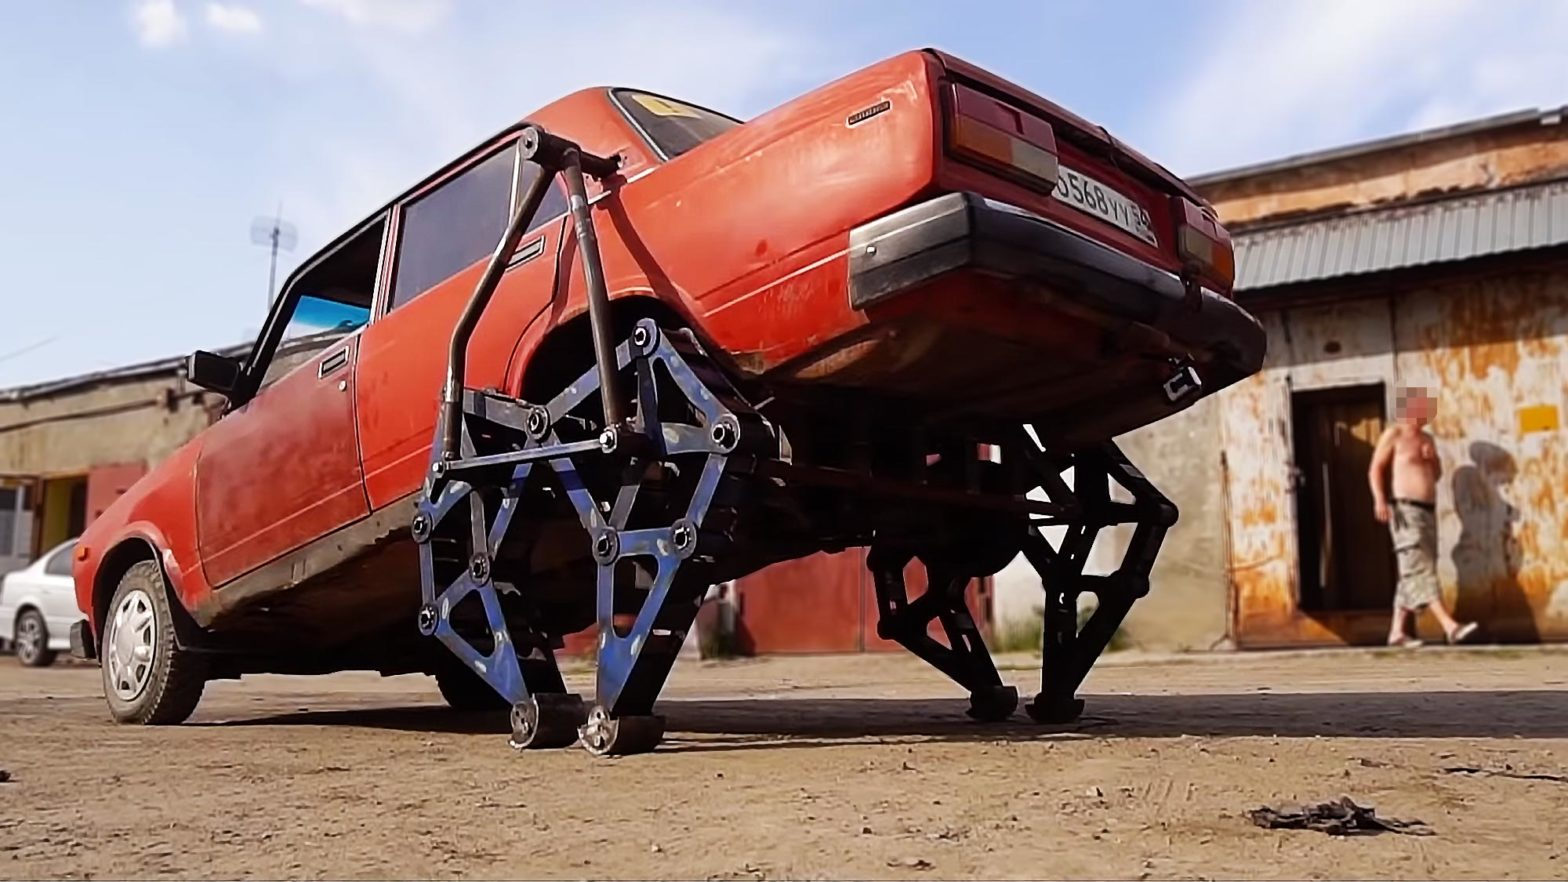 Lada-walker: Custom Lada Sedan with Legs